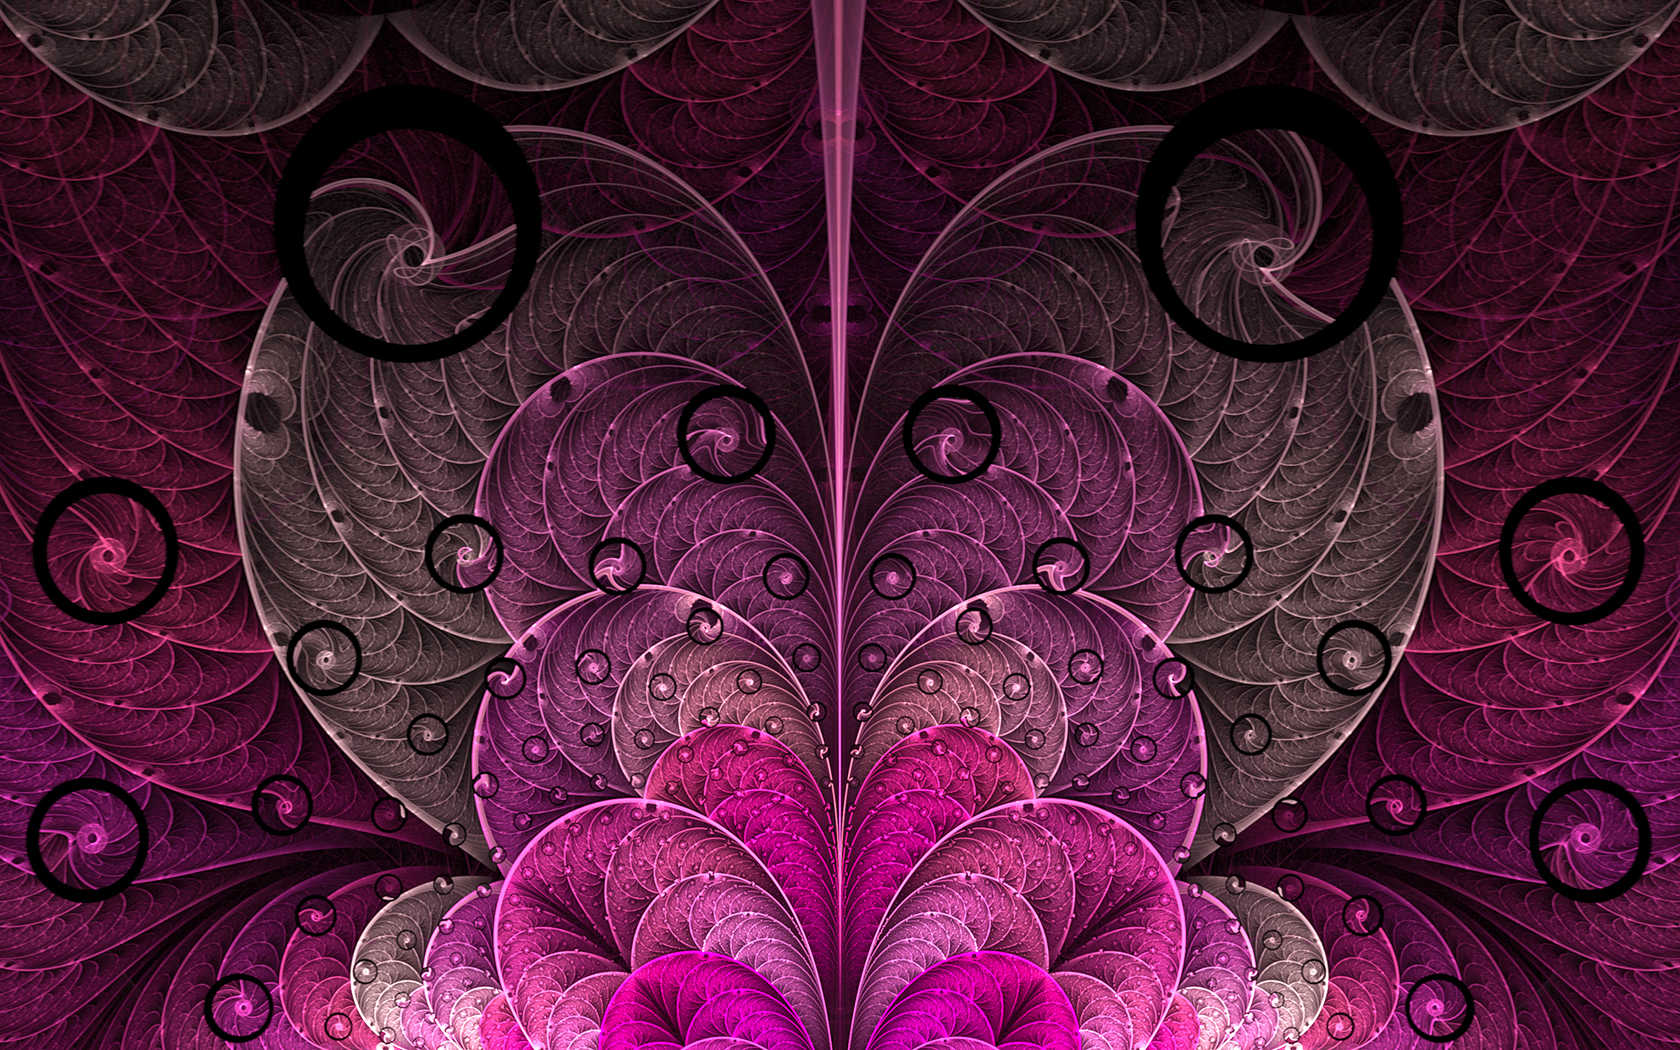 Fall Heart Leaves Background Wallpaper Pink Amp Purple Hearts Fractal Wallpapers Pink Amp Purple